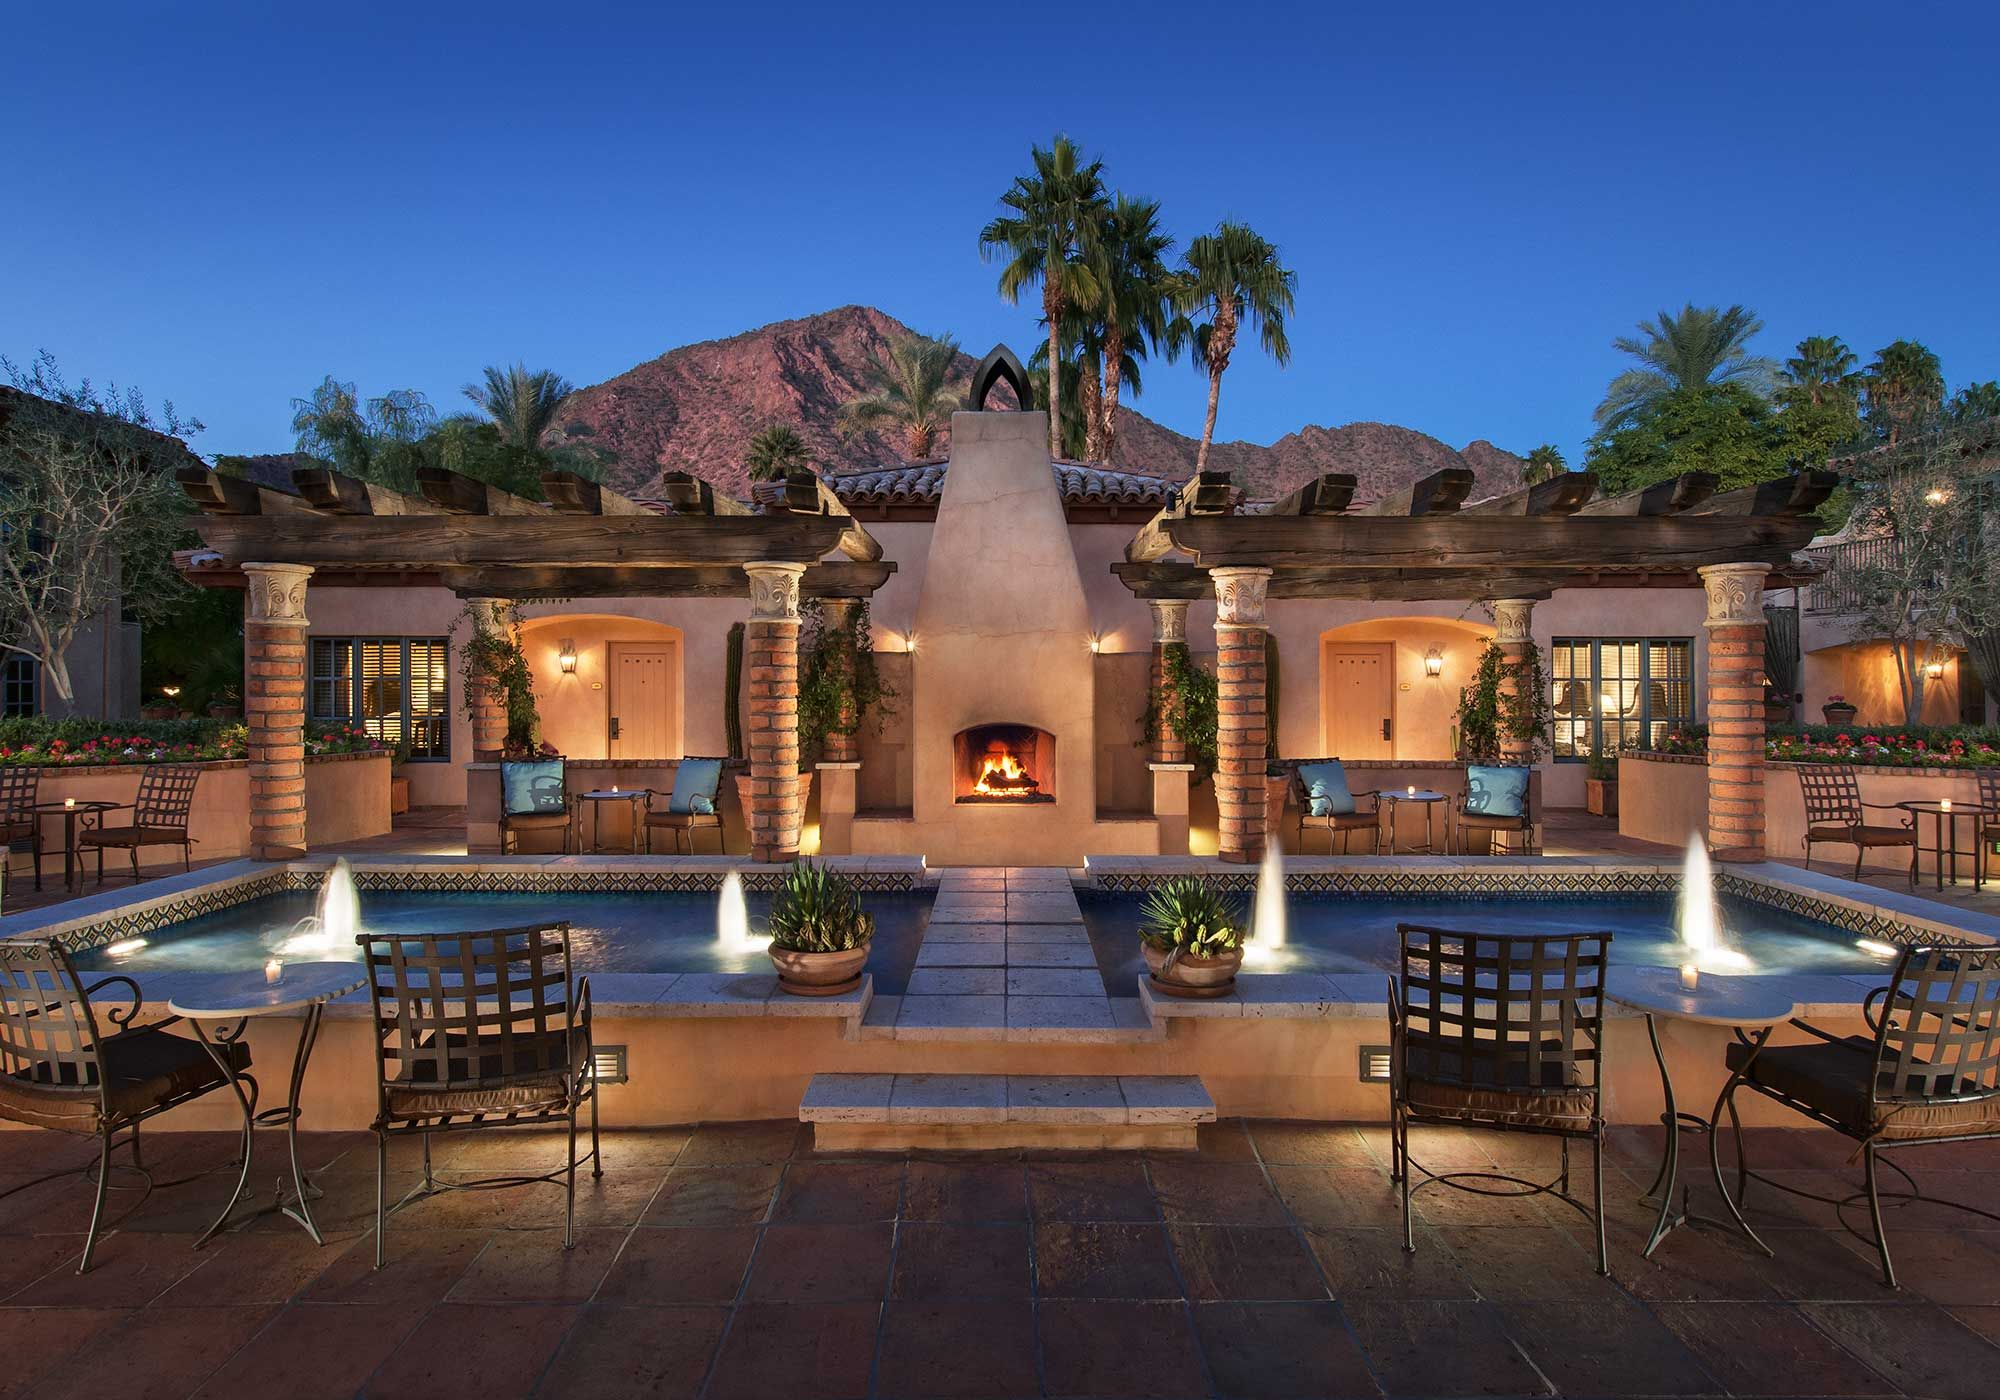 phoenix arizona hotels & resorts | royal palms resort & spa